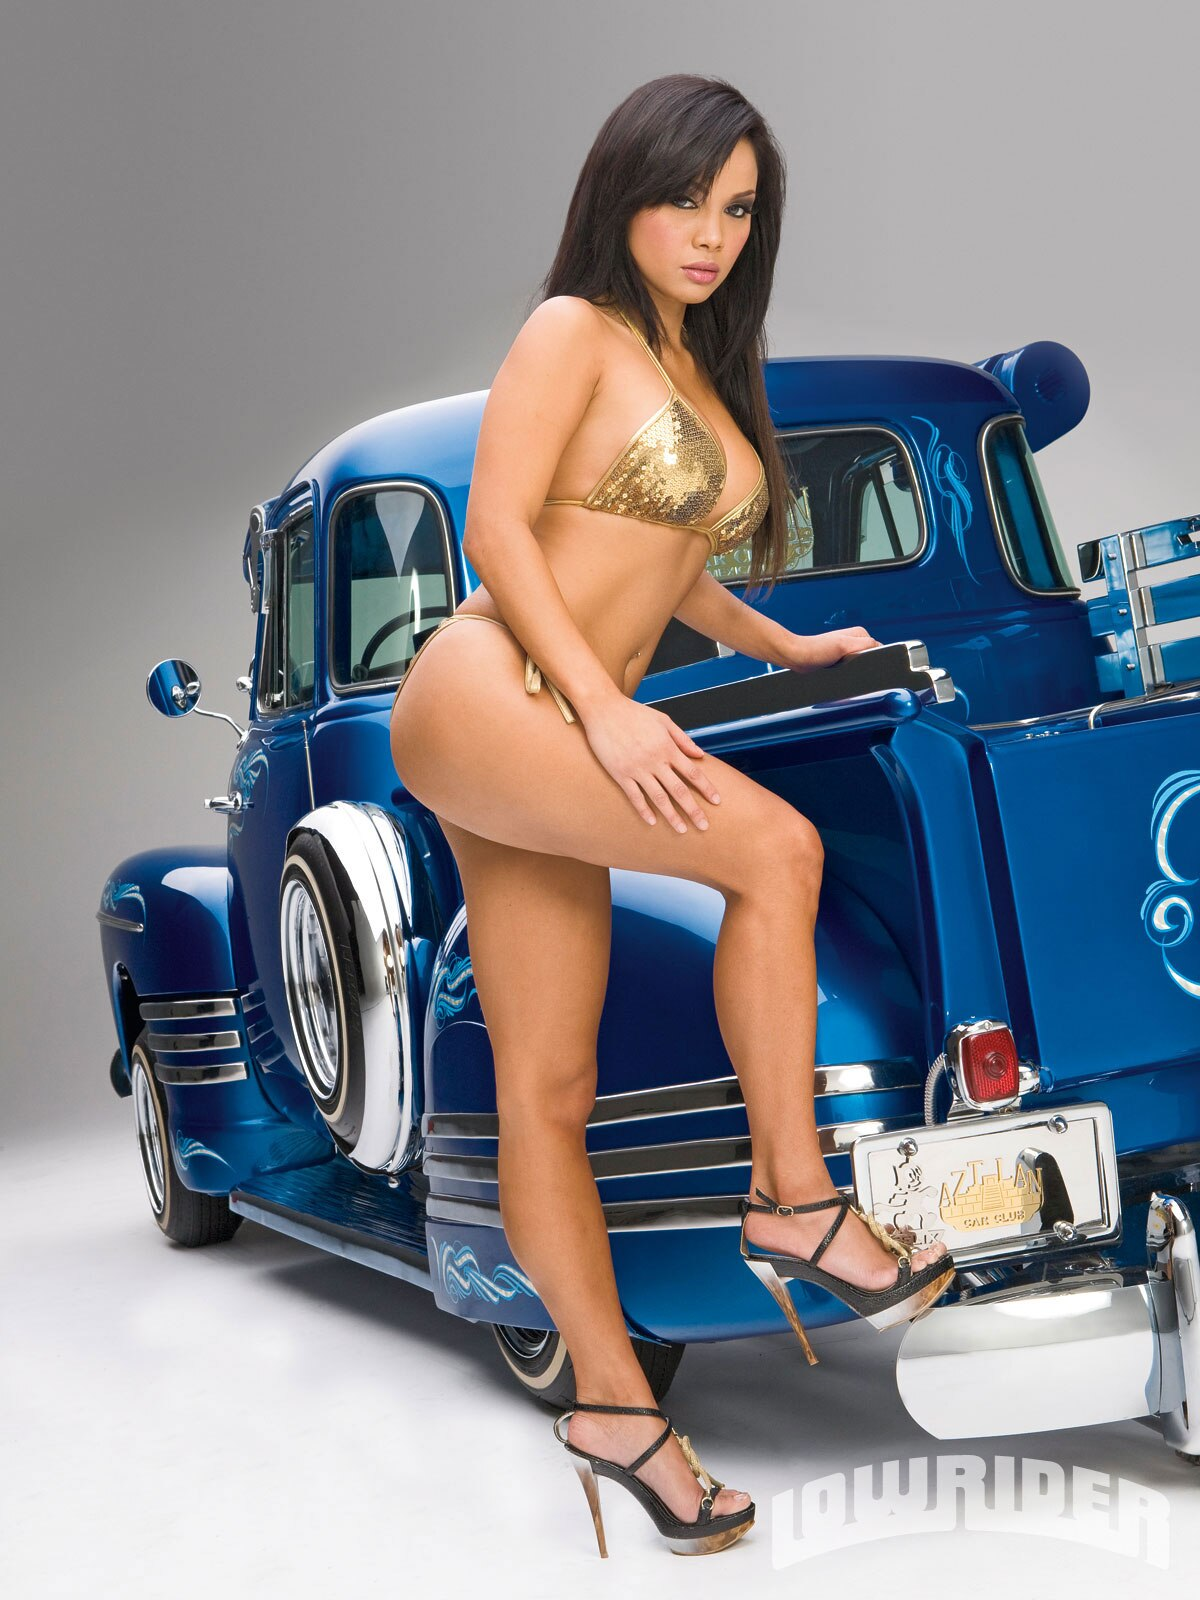 Dawn jaro lowrider girls model lowrider girls magazine for Living with models